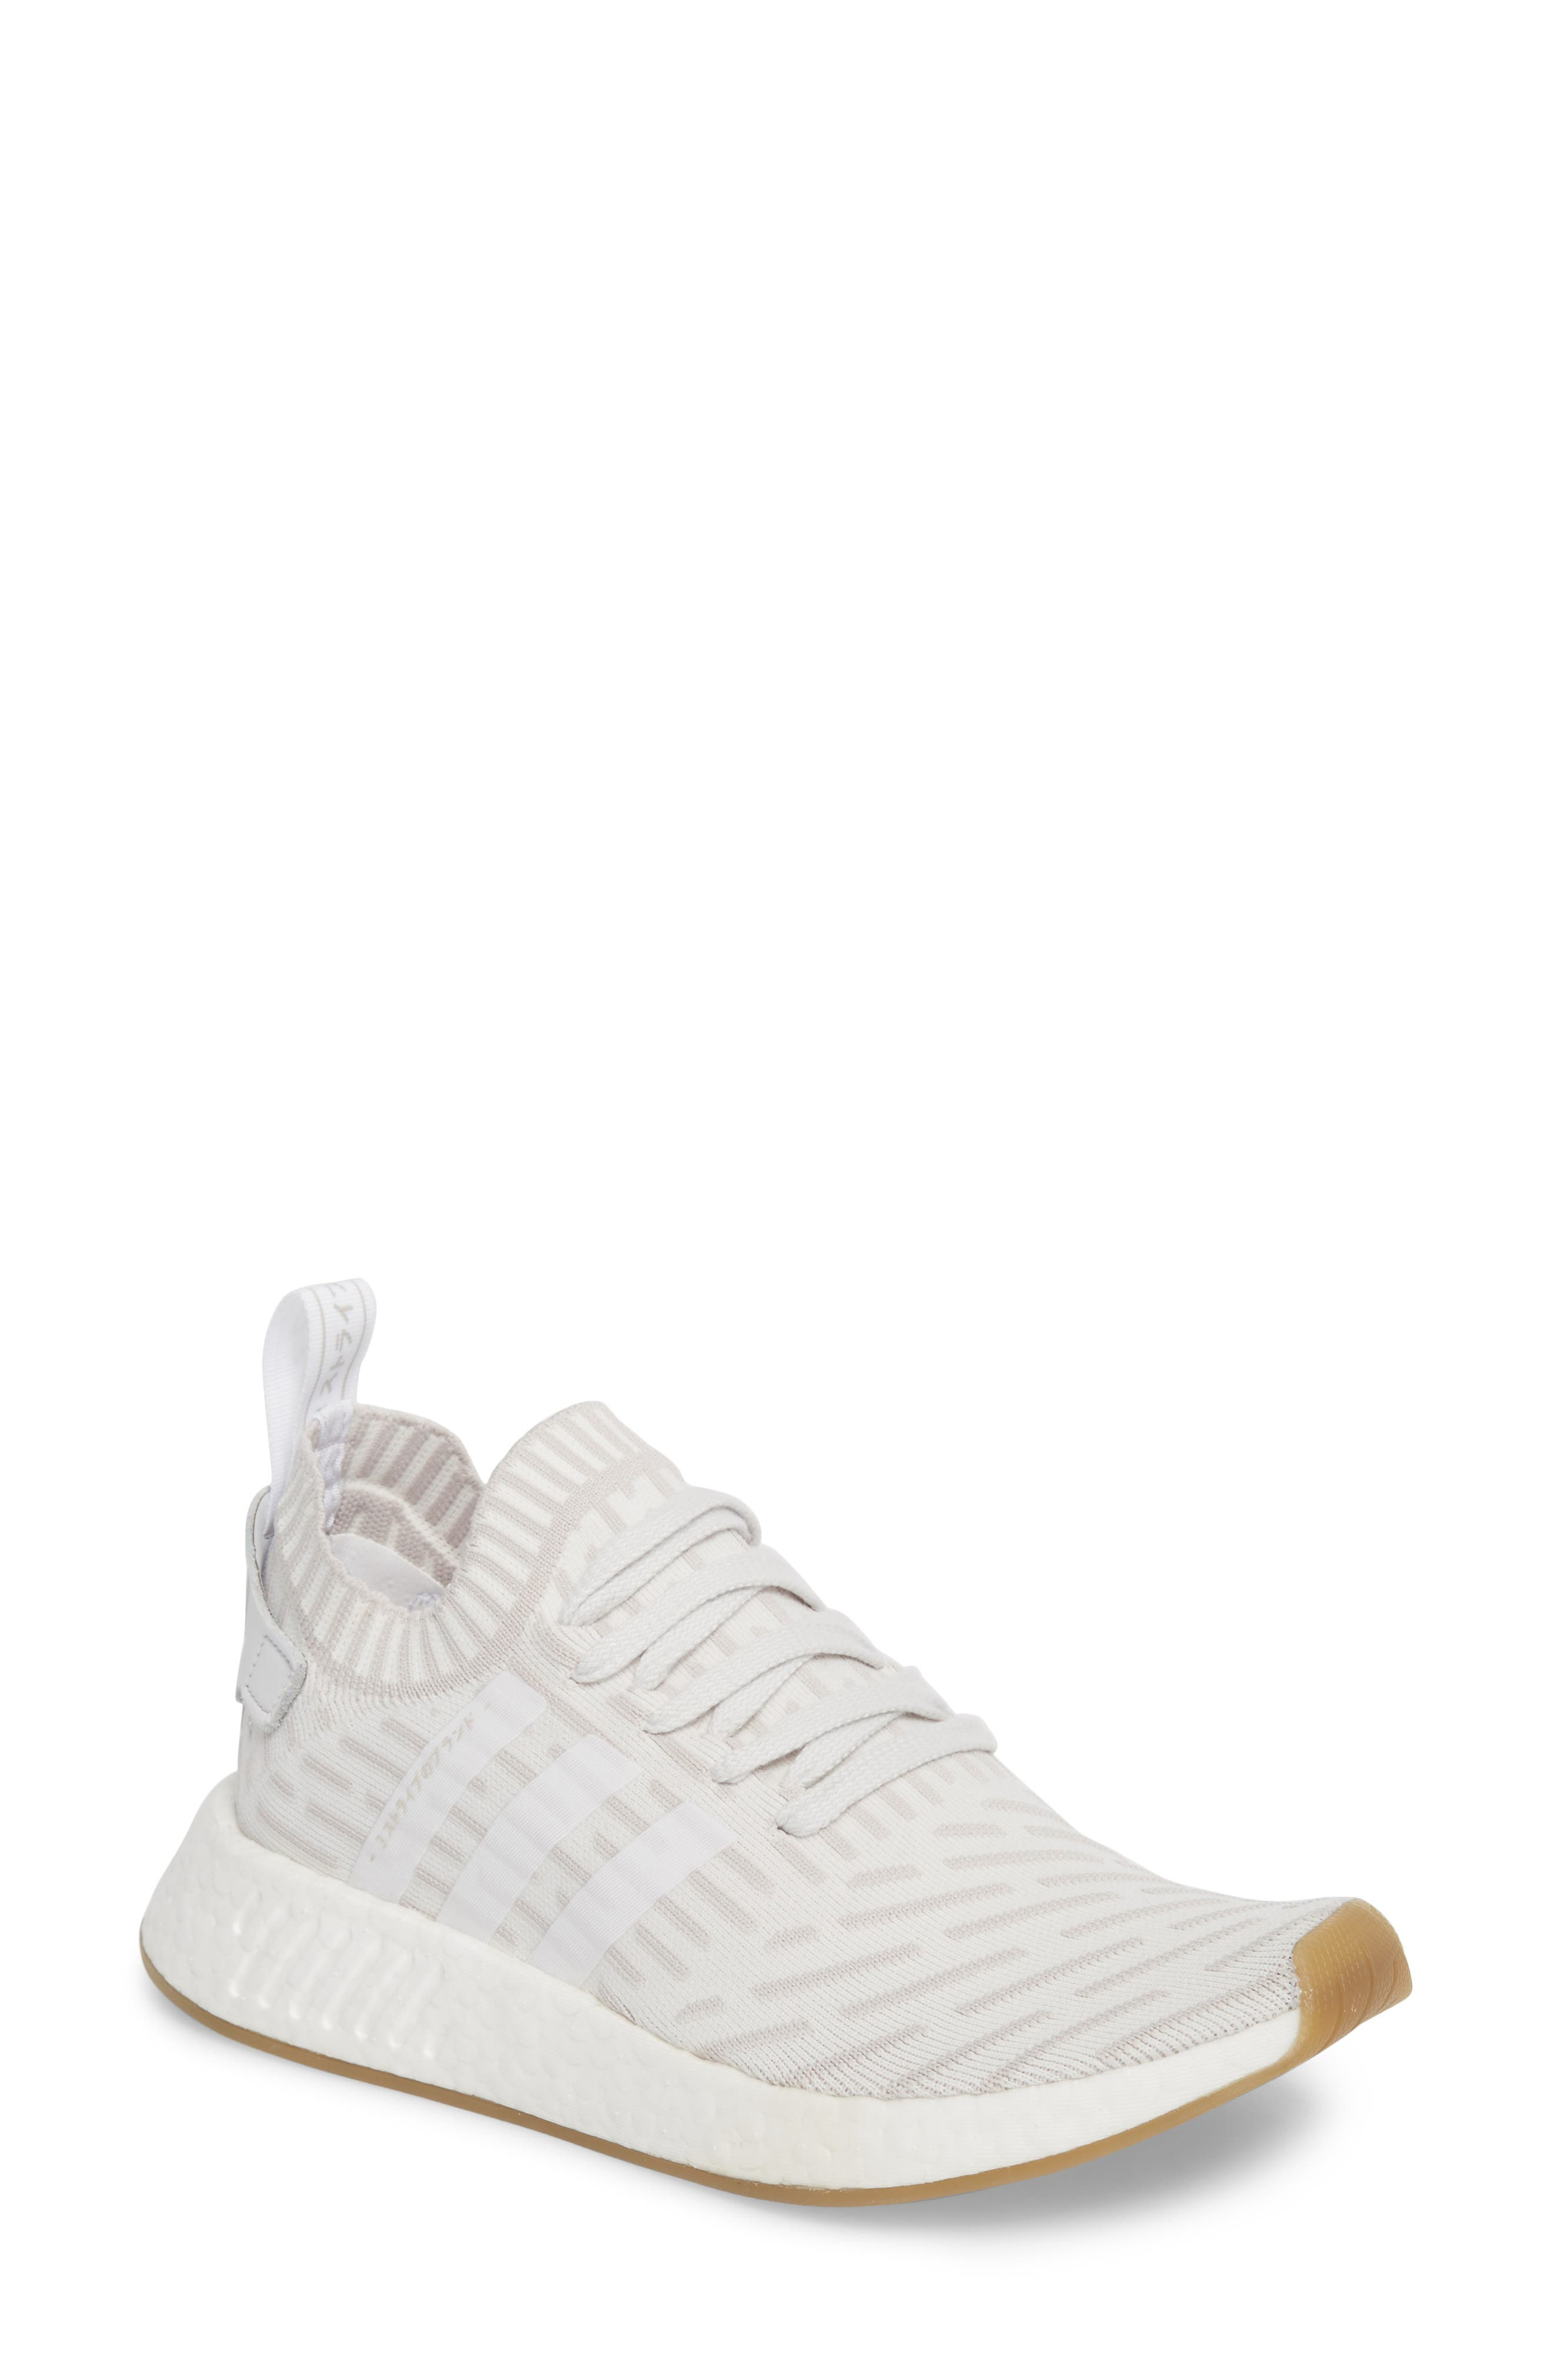 Alternate Image 1 Selected - adidas NMD R2 Primeknit Athletic Shoe (Women)